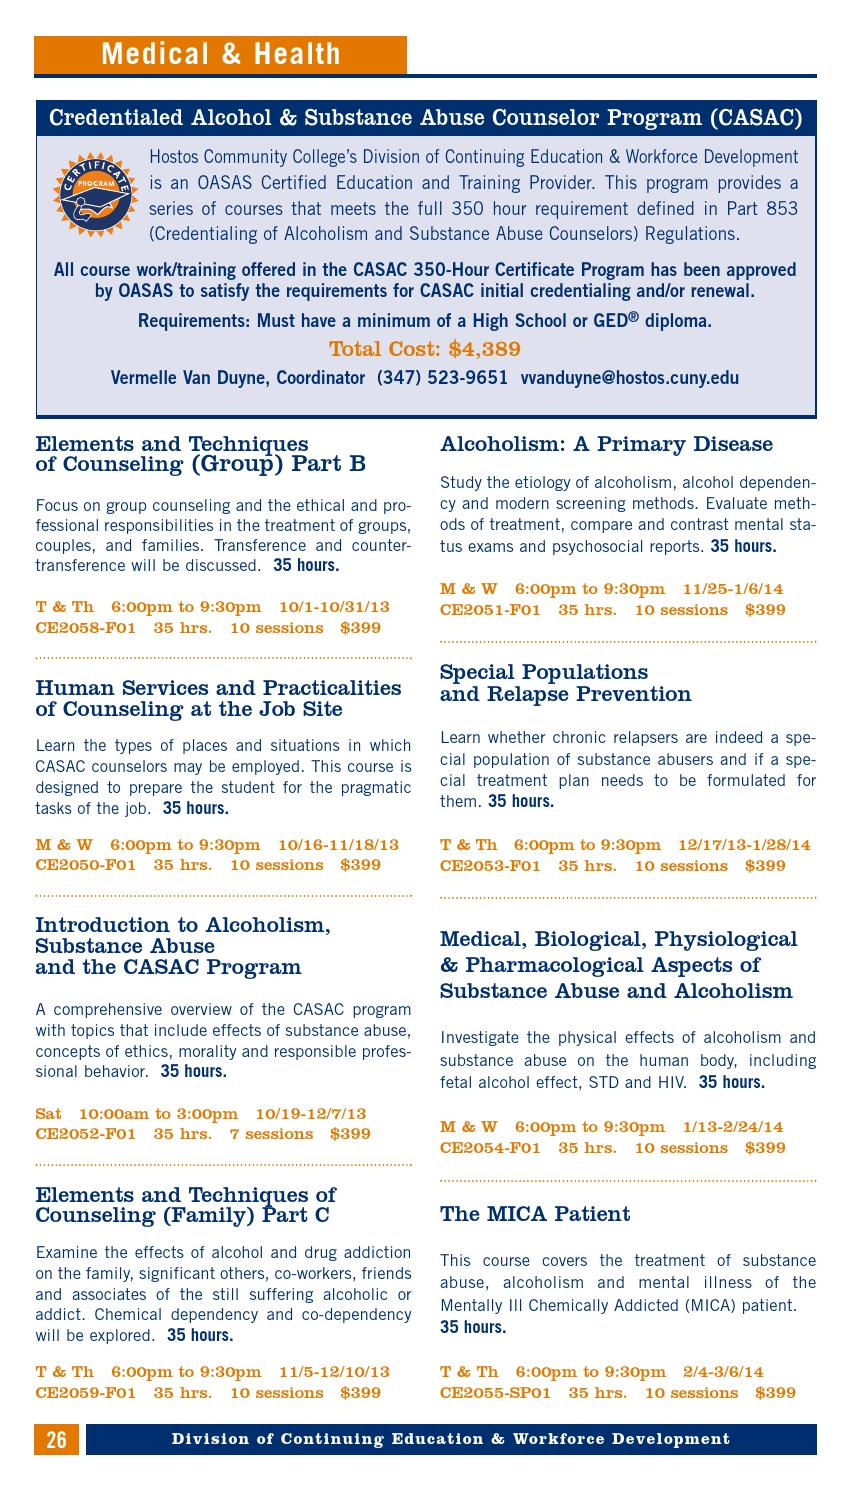 Fall 2013 Continuing Education Catalog By Hostos Community College